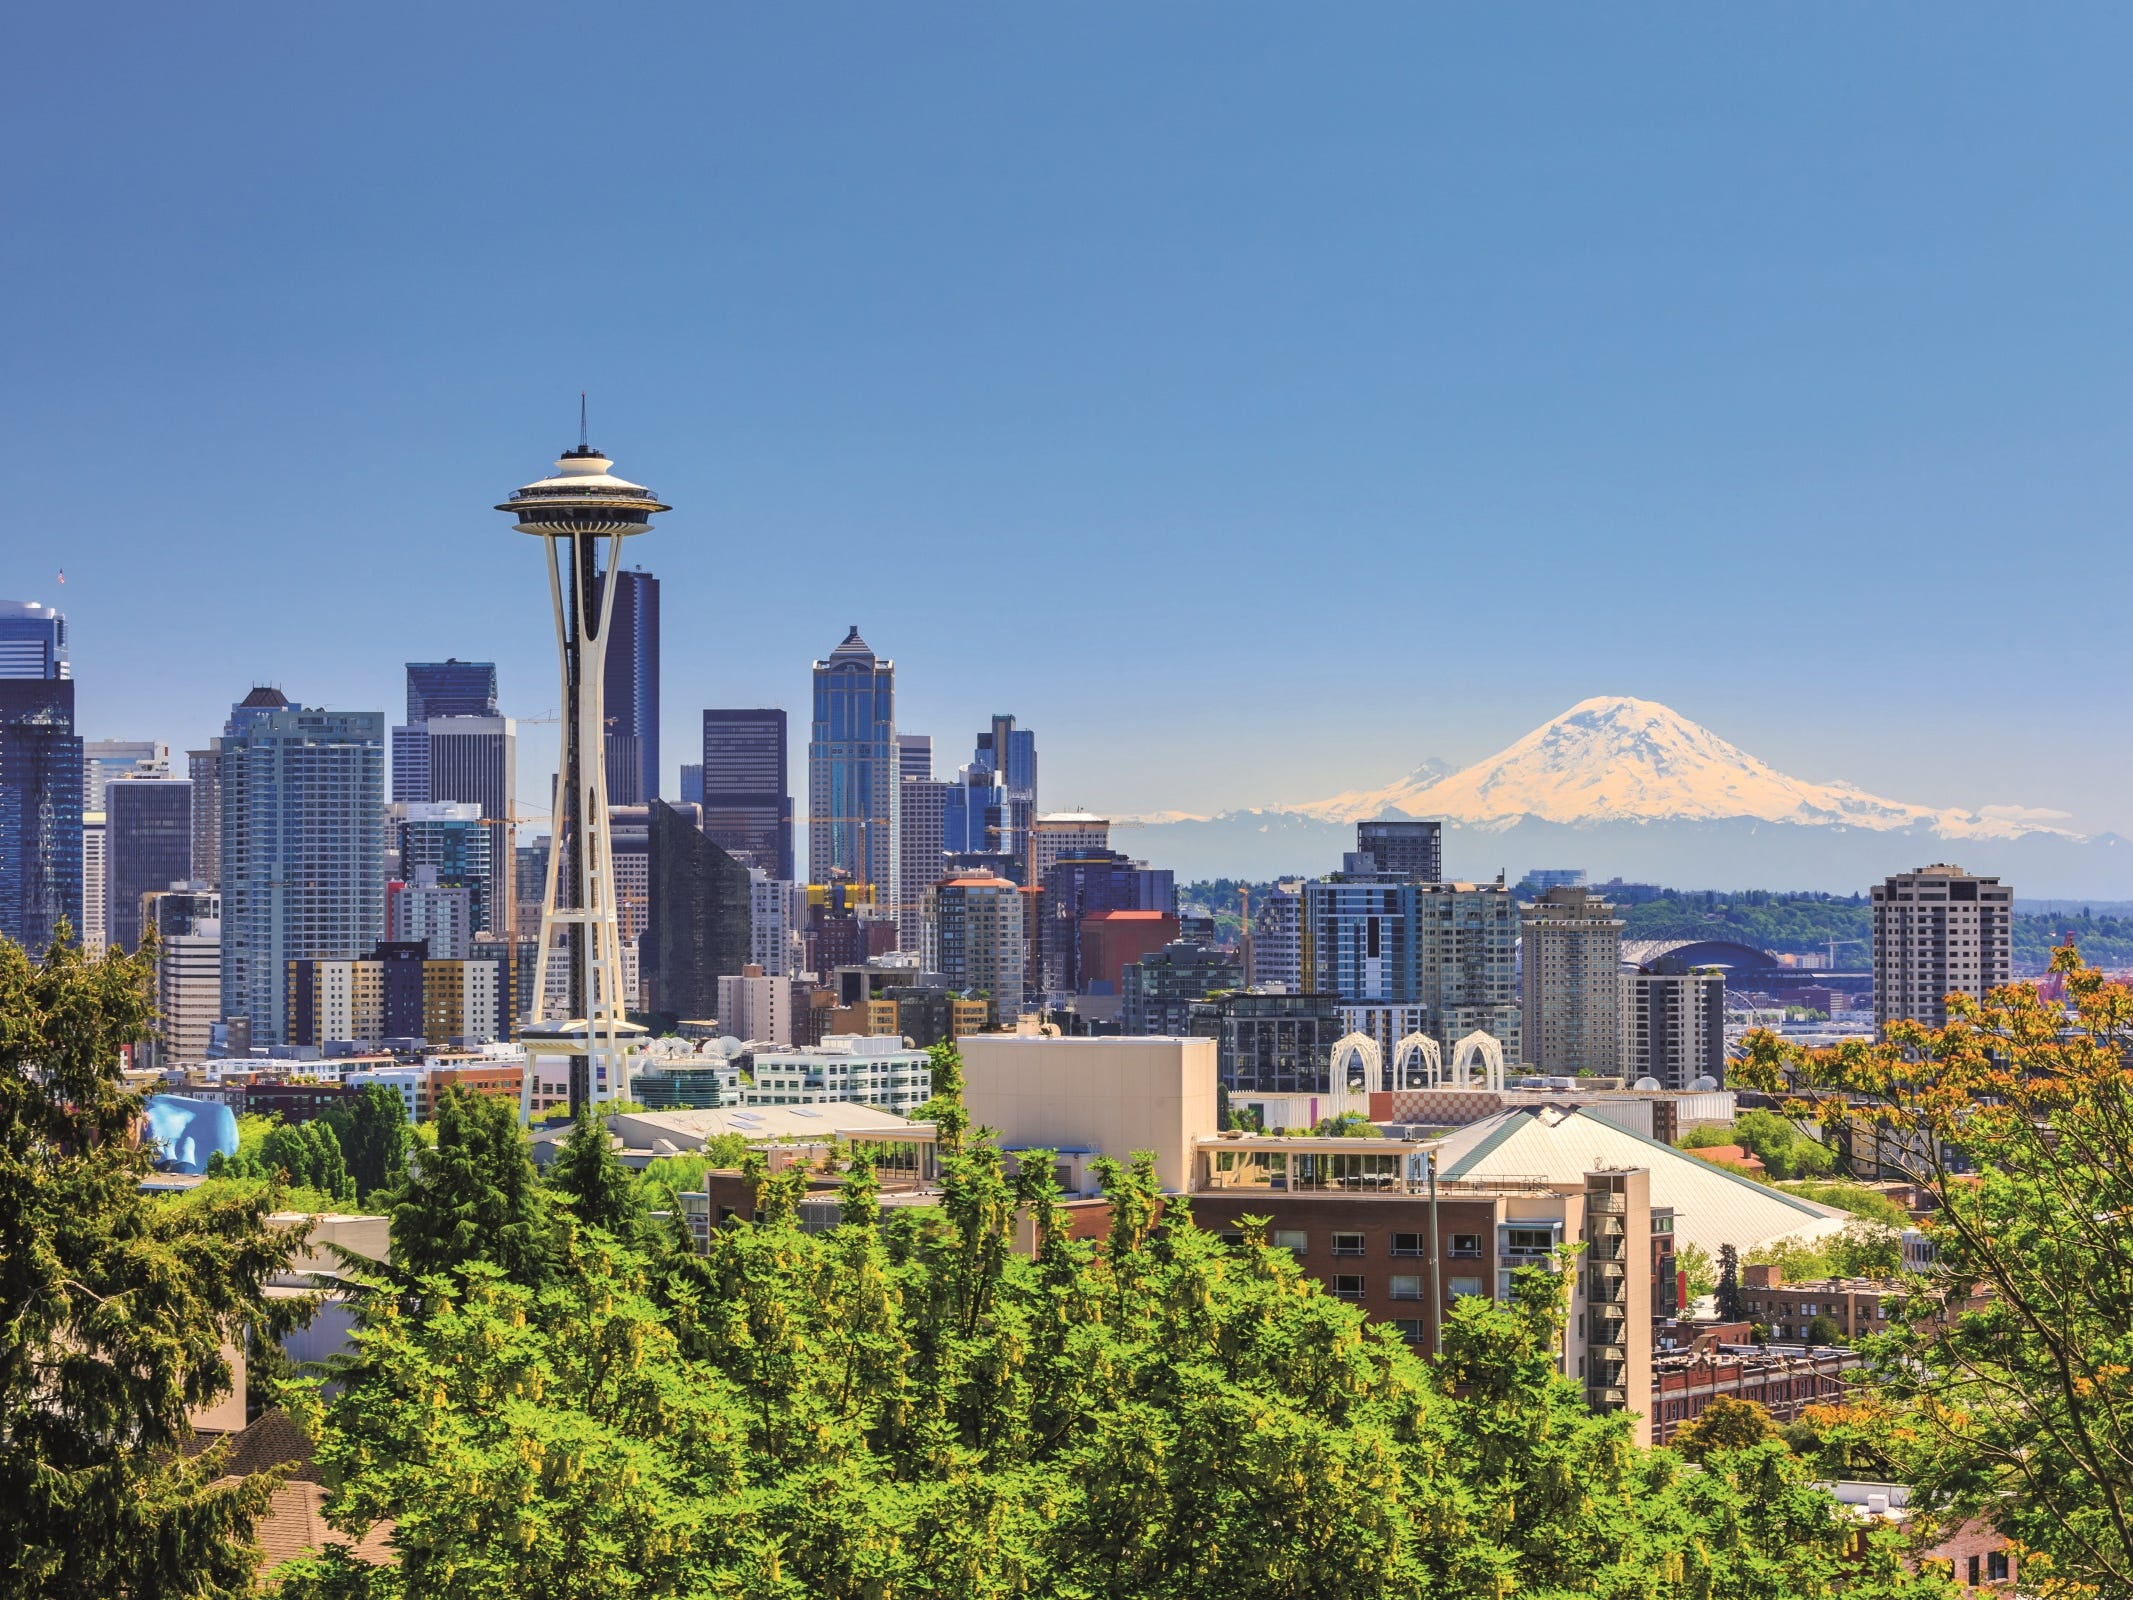 No. 8 on the list of top 10 cities to visit in 2019 is Seattle. Fast-moving, savvy and brimming with fresh ideas, Seattle is a high-achieving, high-tech city that has steadfastly managed to hang onto its soul.